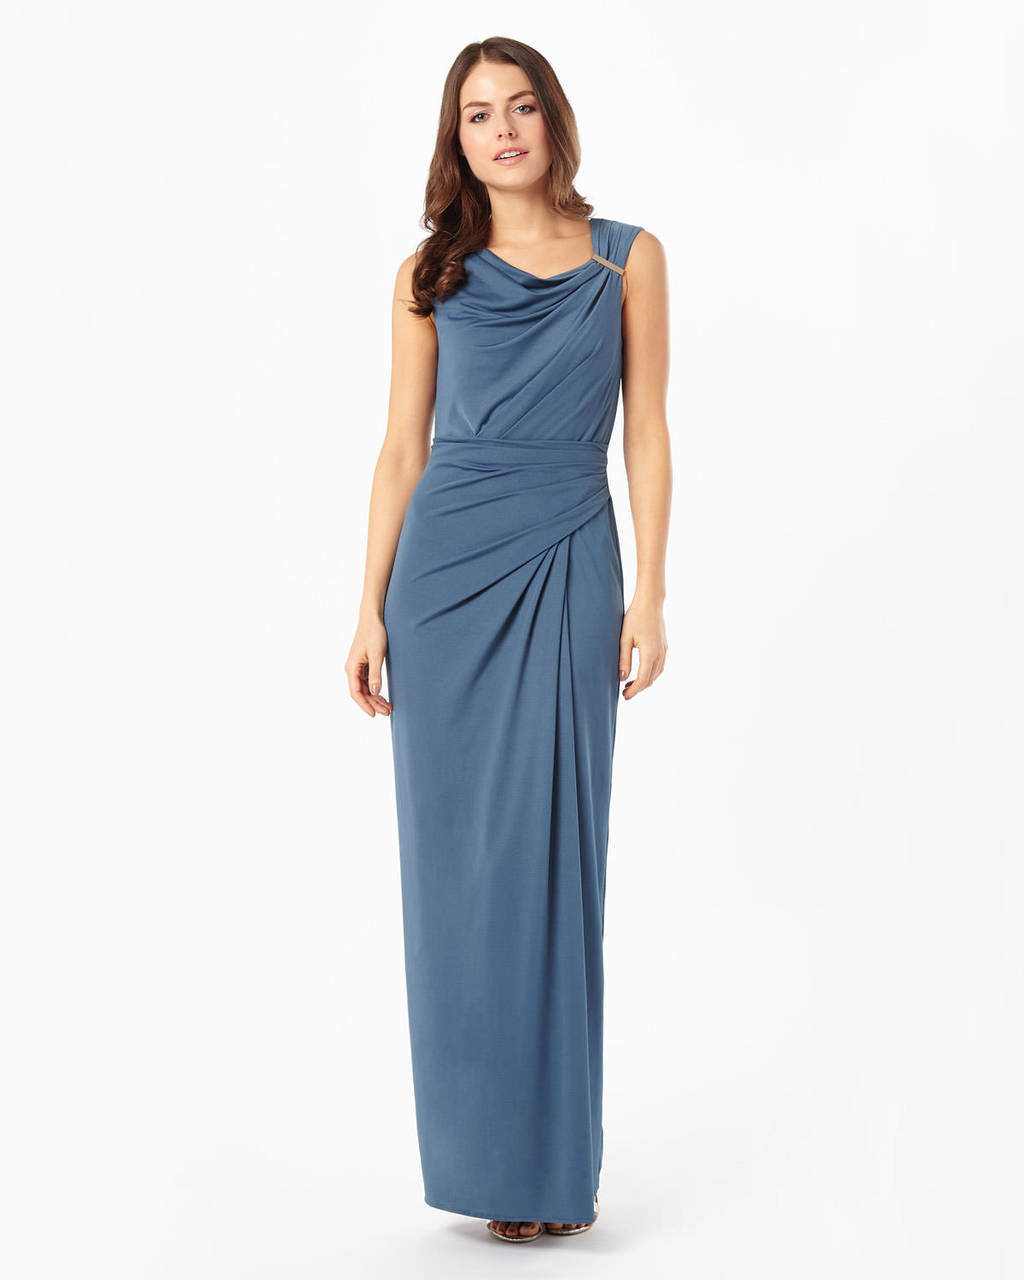 Dina Trim Maxi Dress - neckline: cowl/draped neck; fit: tailored/fitted; pattern: plain; sleeve style: sleeveless; style: maxi dress; length: ankle length; waist detail: flattering waist detail; predominant colour: denim; fibres: polyester/polyamide - stretch; occasions: occasion; hip detail: subtle/flattering hip detail; sleeve length: sleeveless; pattern type: fabric; texture group: jersey - stretchy/drapey; season: s/s 2016; wardrobe: event